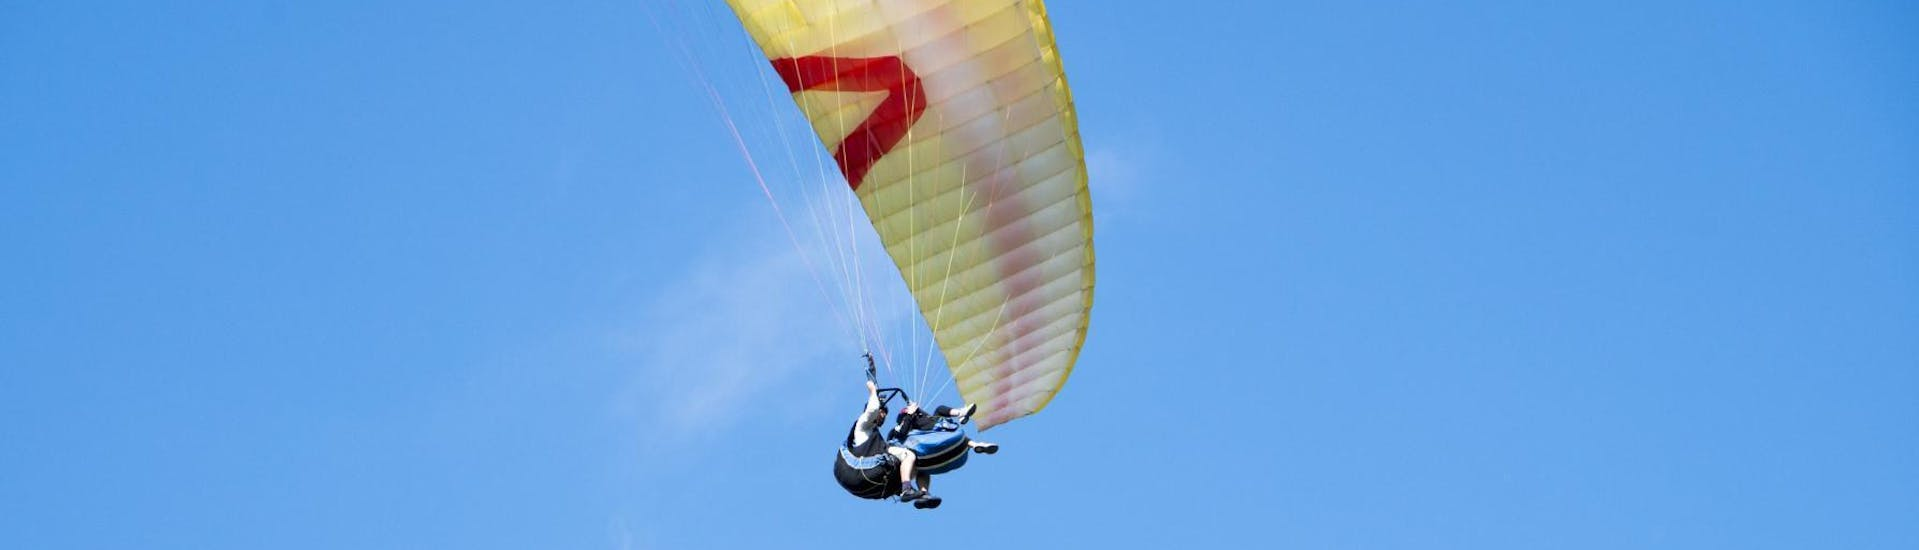 Tandem Paragliding from Krvavec Mountain